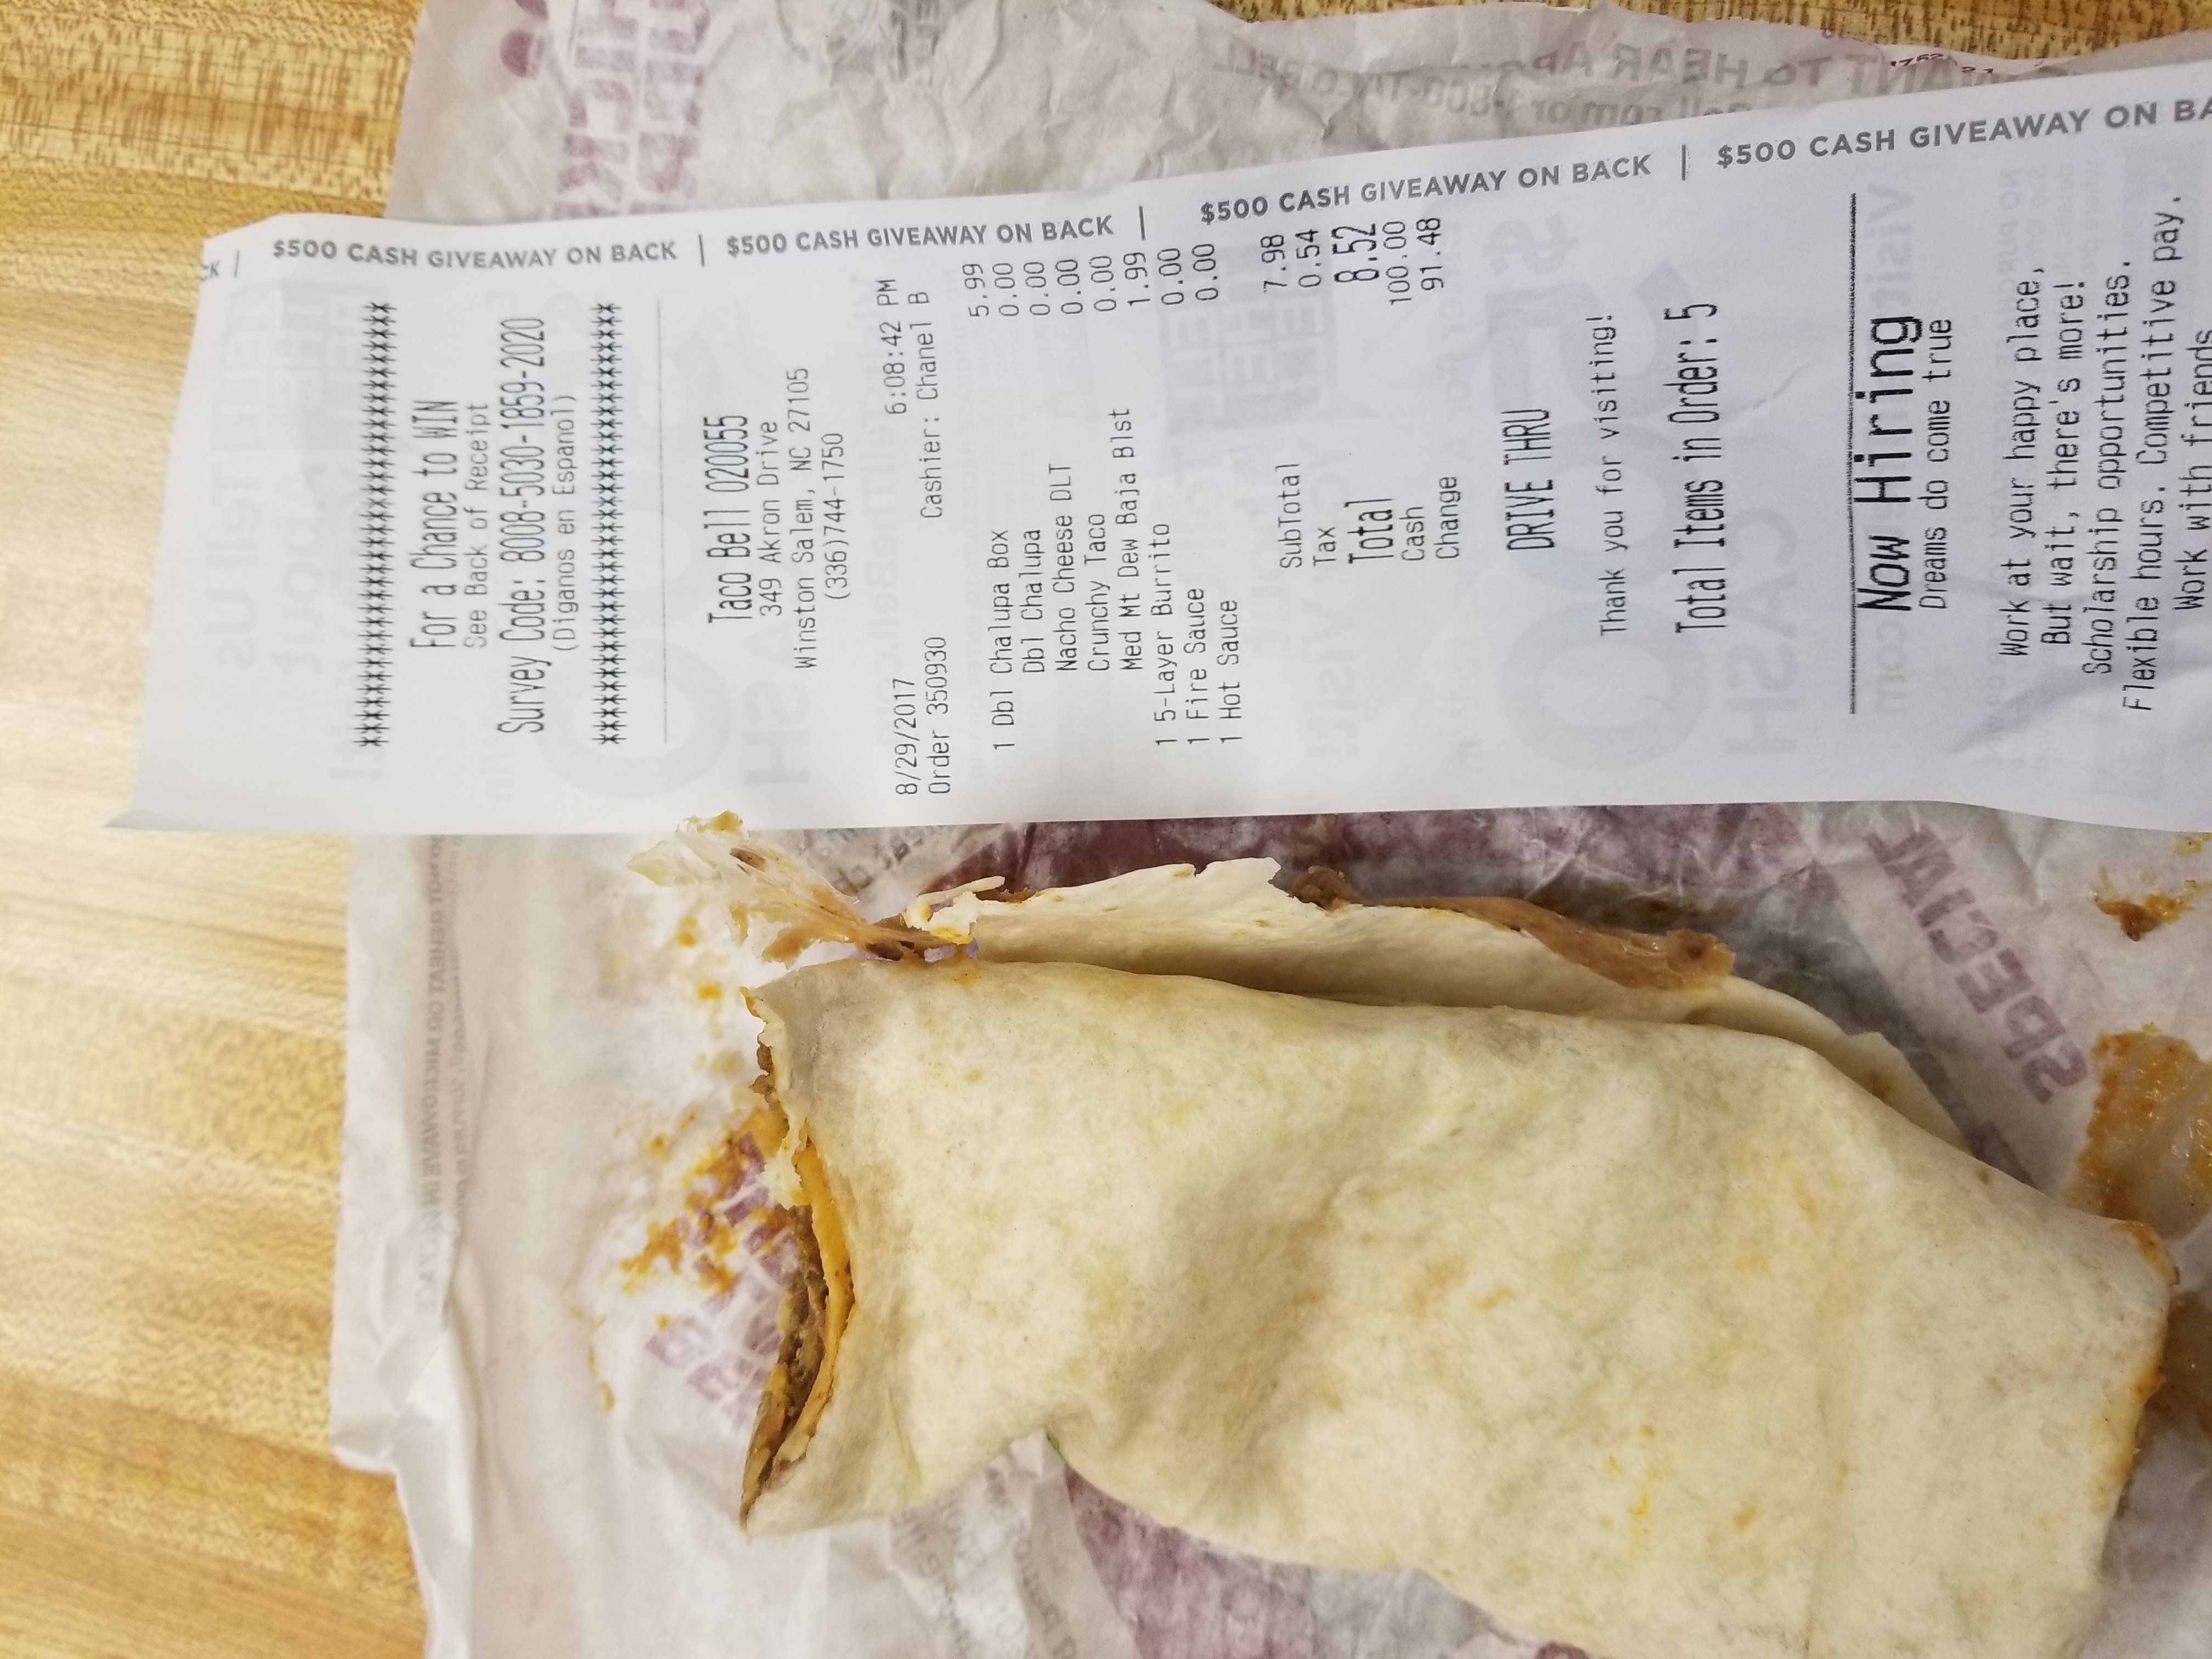 Taco Bell Customer Service Complaints Department | HissingKitty.com